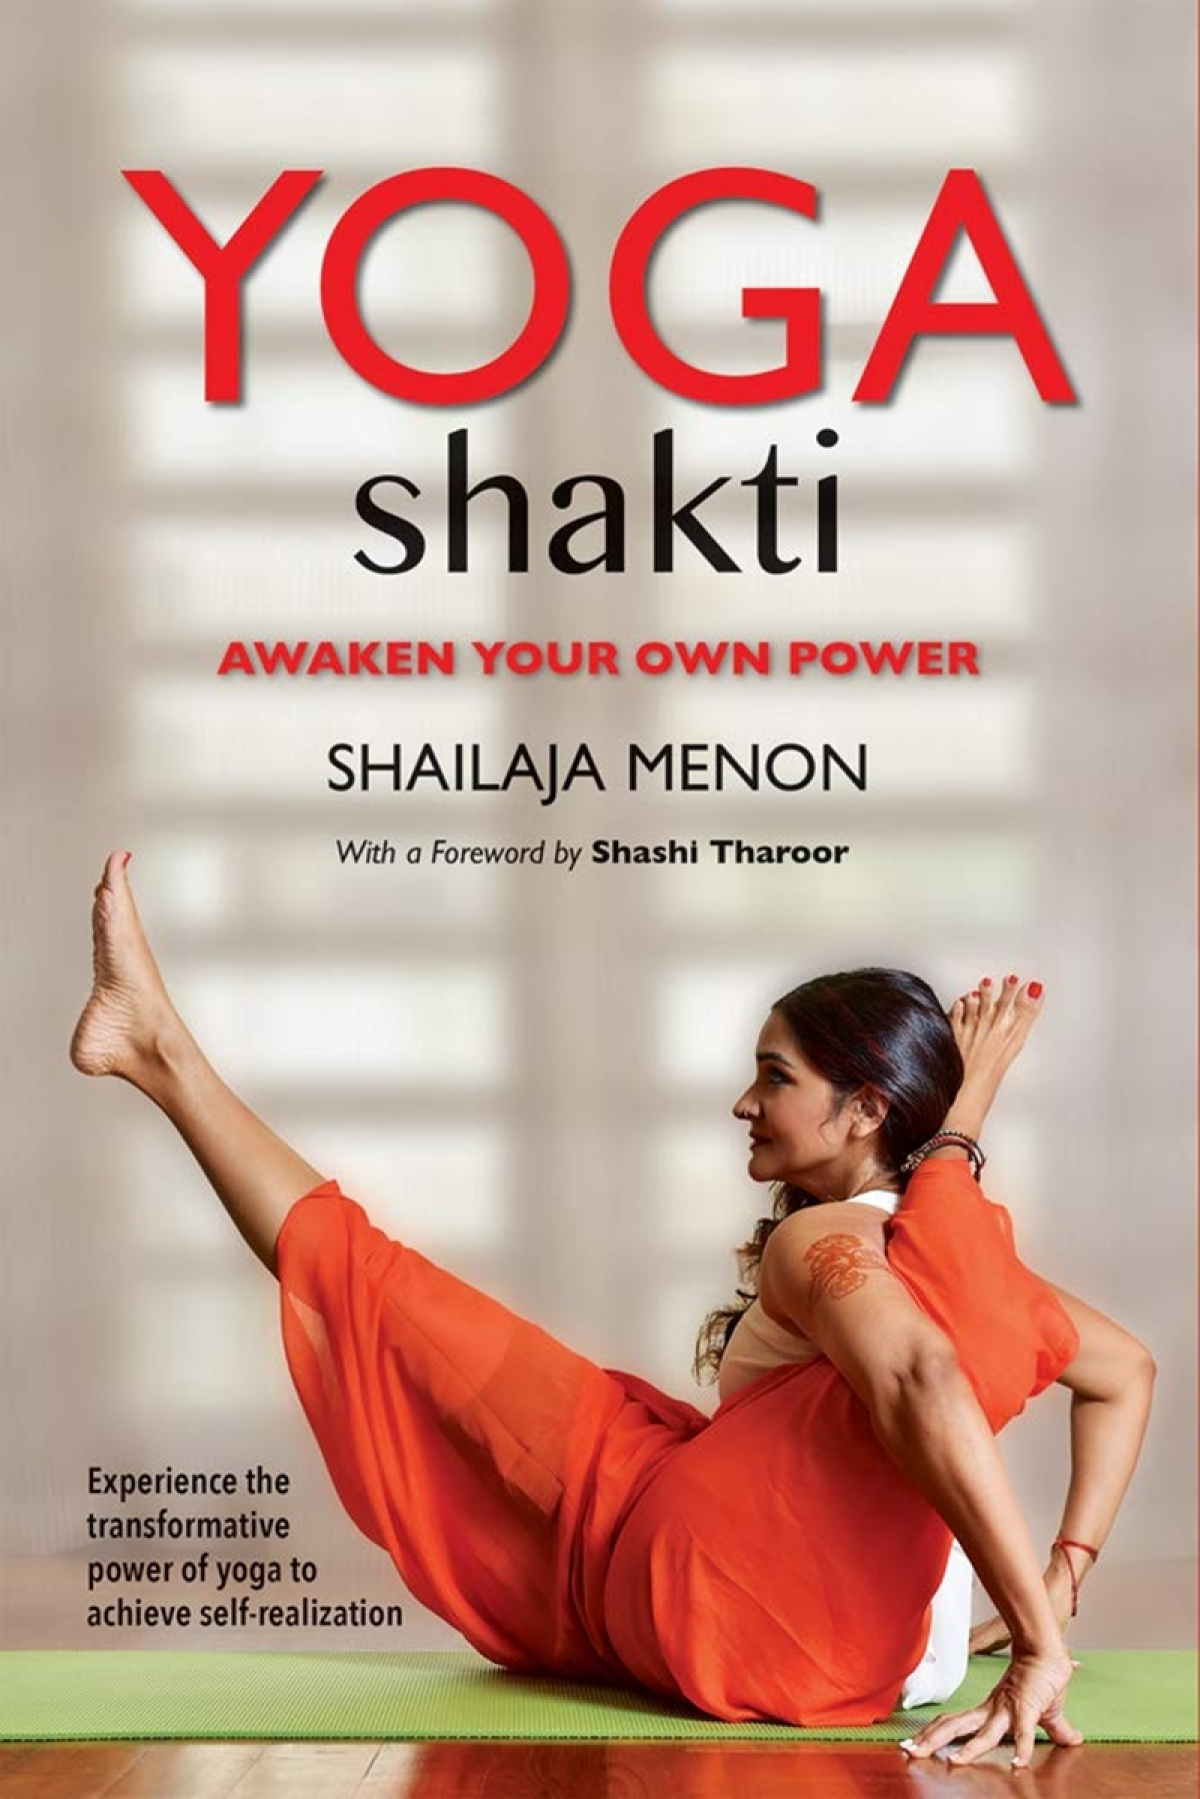 Yoga Shakti: Awaken Your Own Power by Shailaja Menon-Review